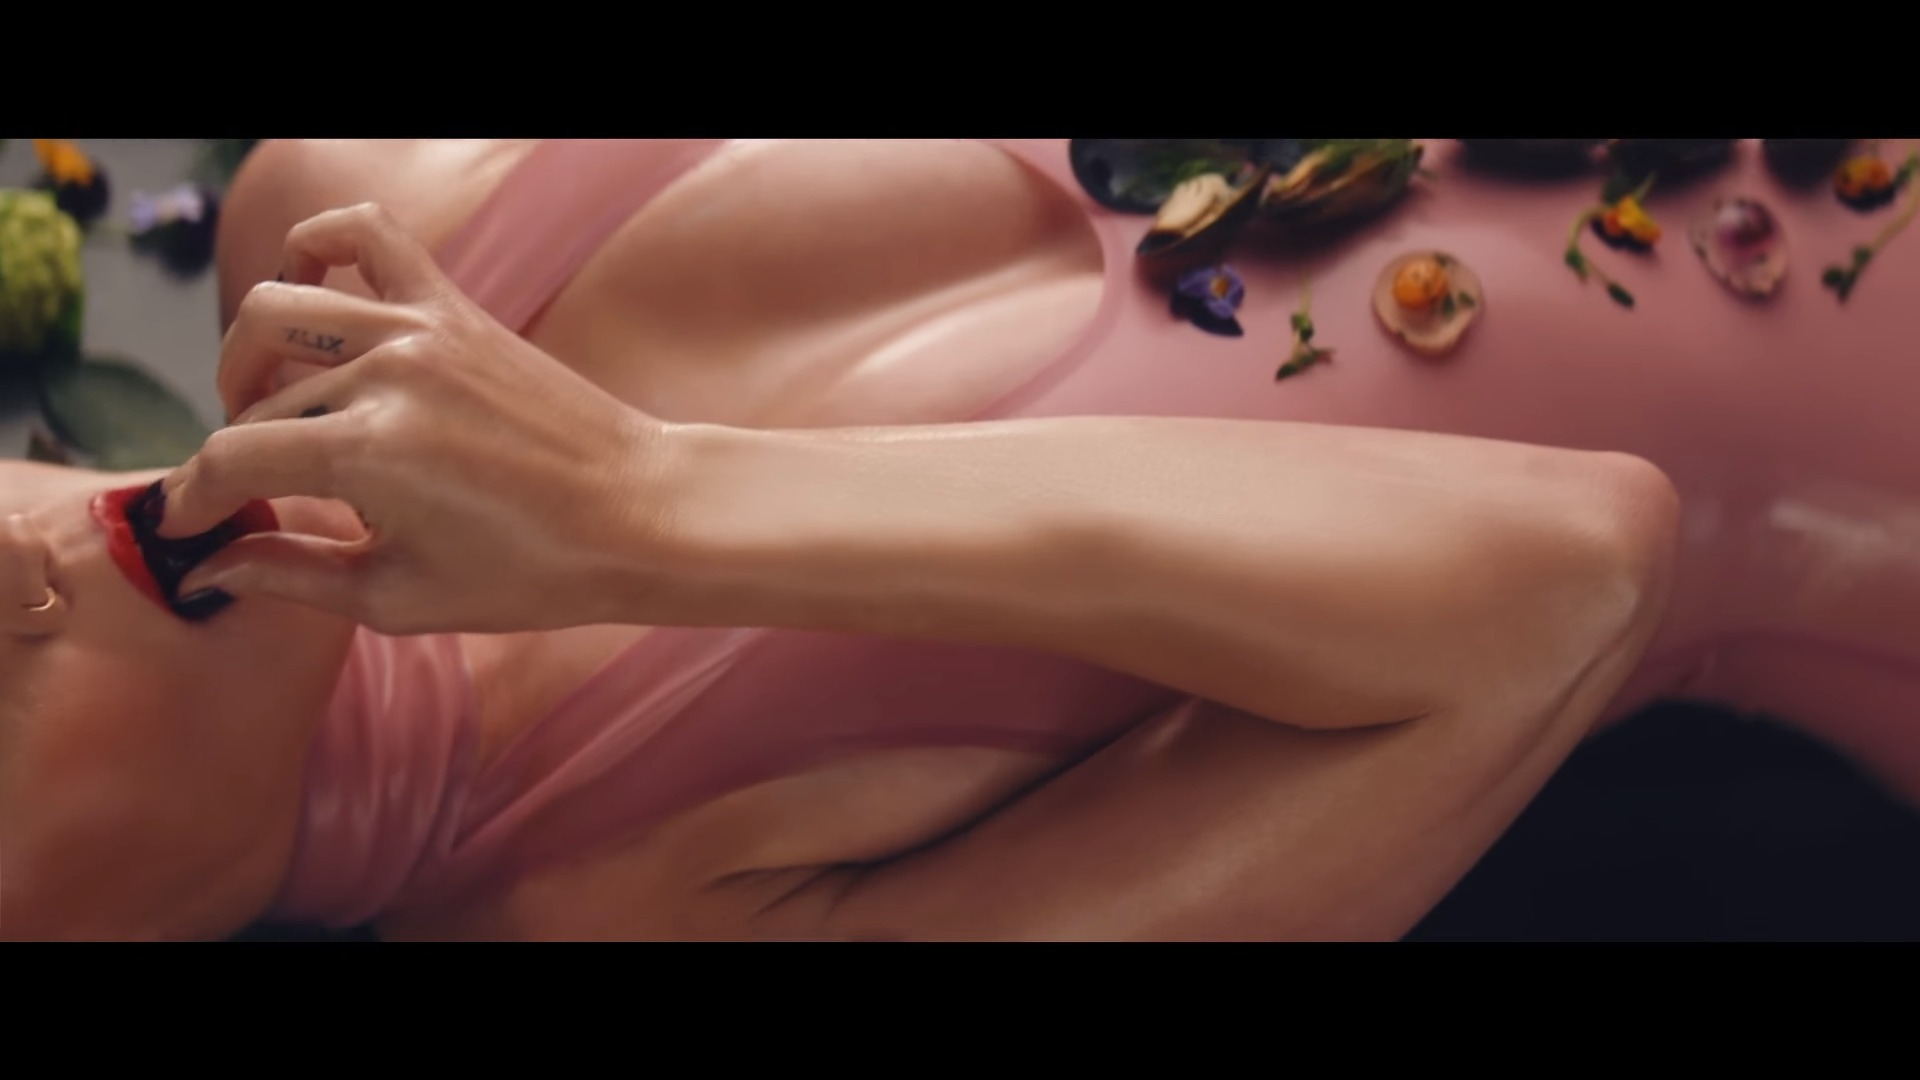 katy perry bon appetit latex (2)